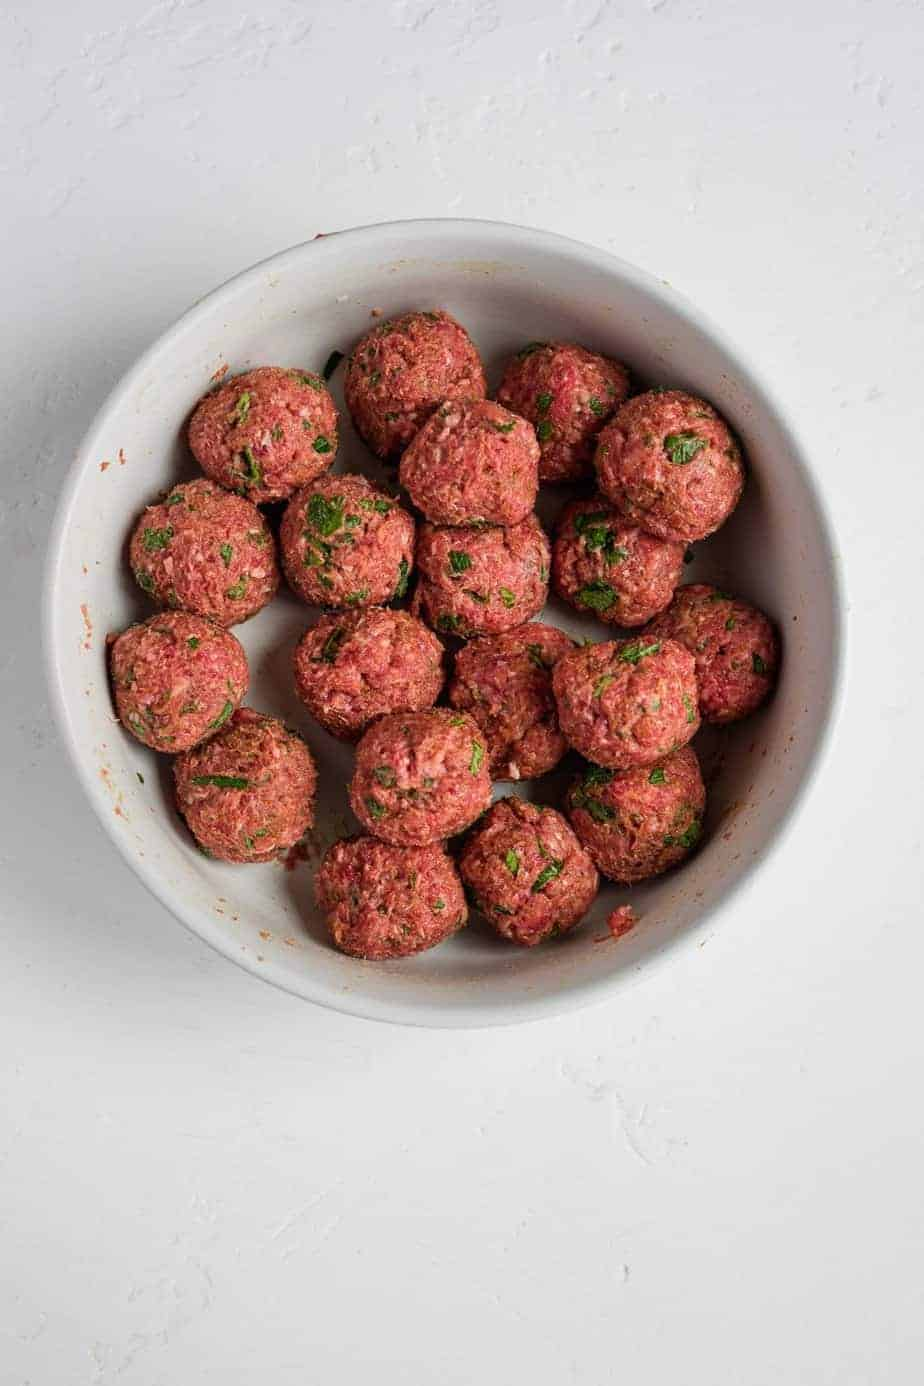 the ground lamb and all the ingredients into balls